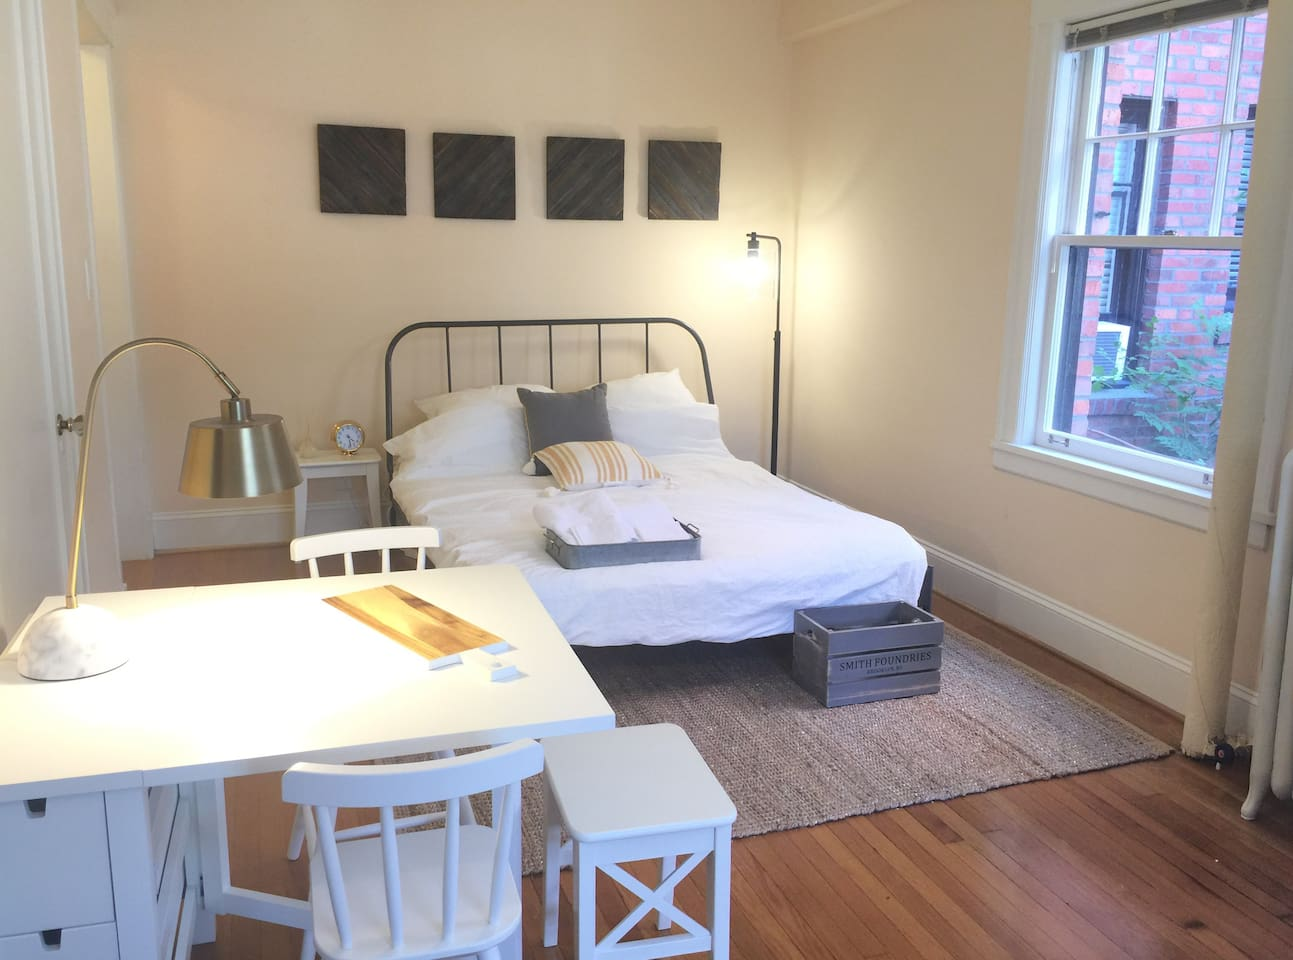 Calm & clean downtown studio- perfectly located in the heart of downtown so you can walk everywhere... Pike Place Market, Space Needle, Whole Foods Market, and all of downtown shopping / cafes / restaurants / bars. Much quieter than most downtown studios as it's facing an interior courtyard.